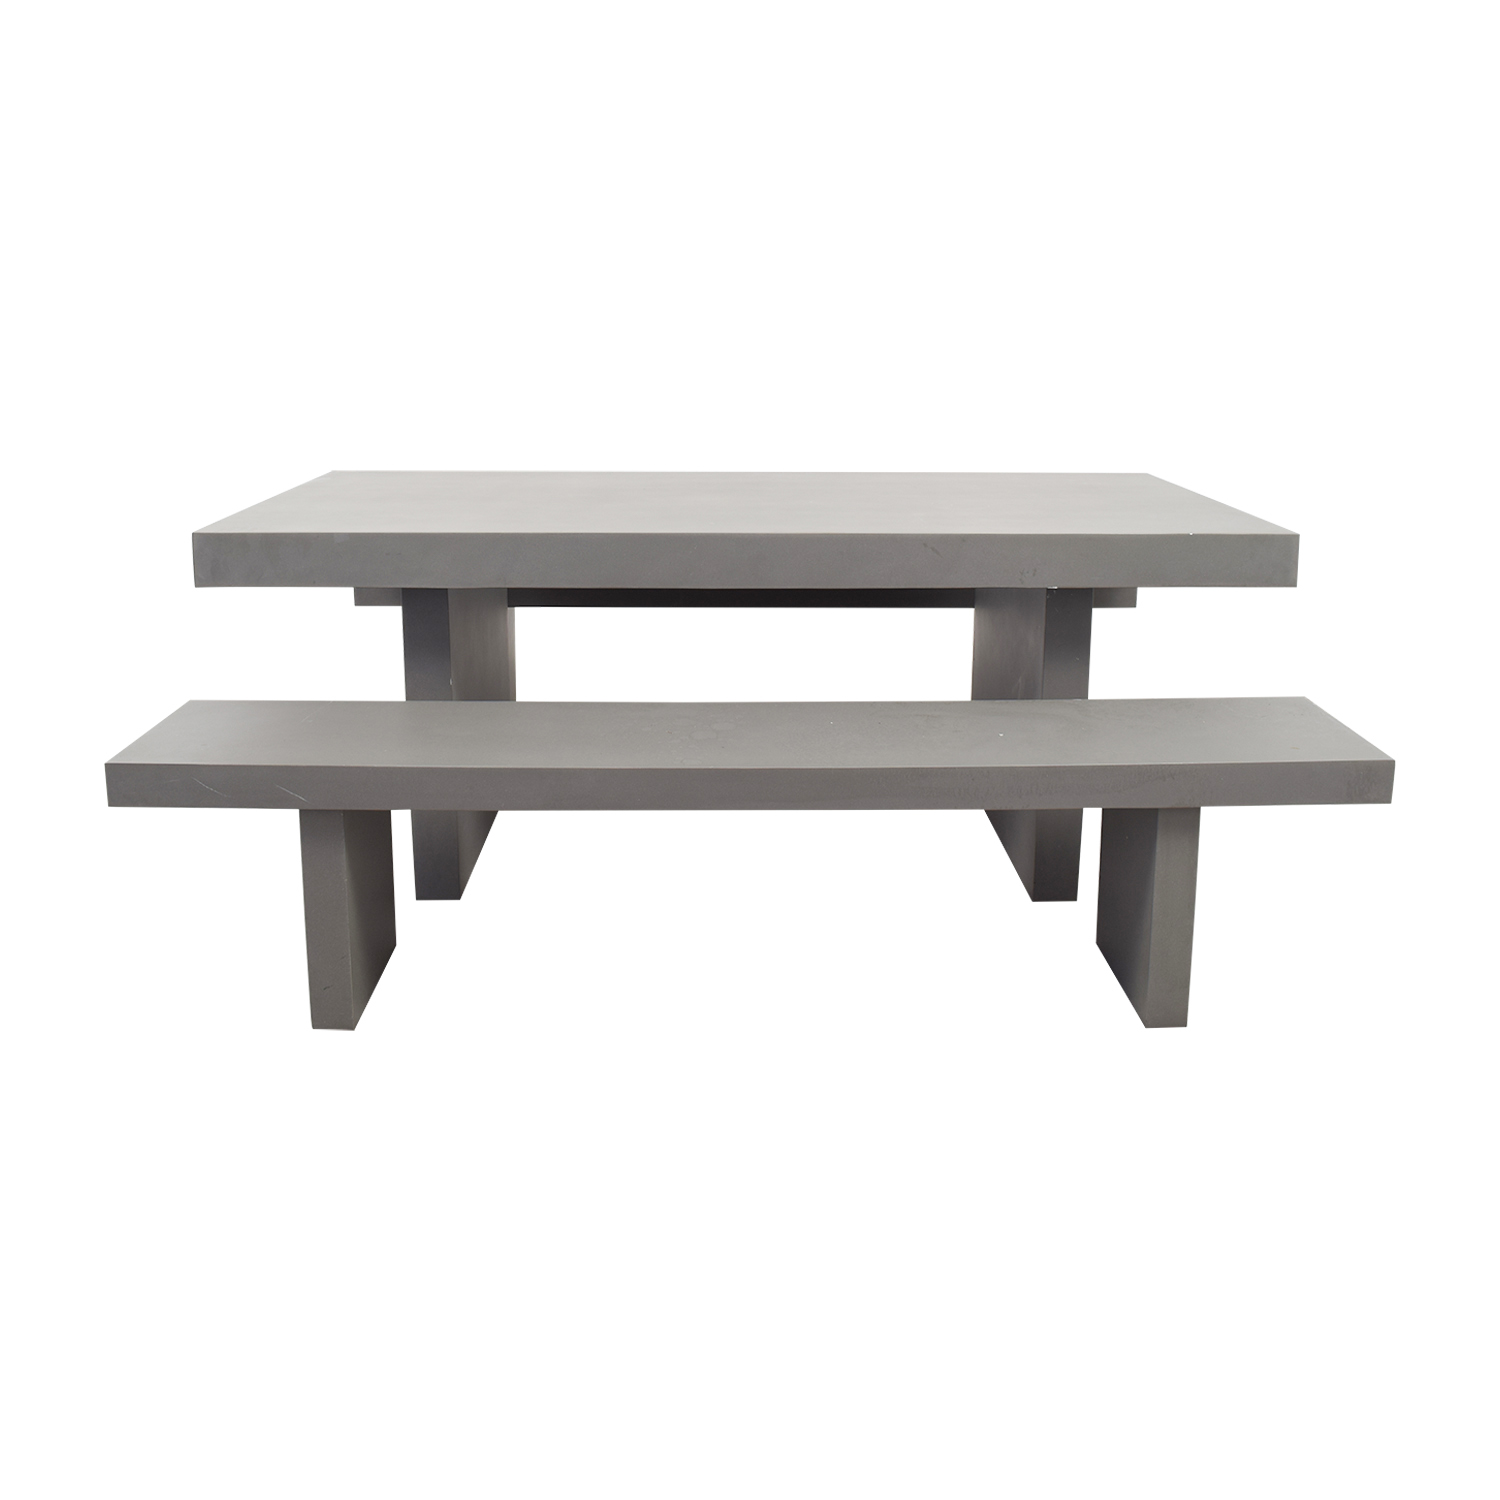 West Elm West Elm Quarry Gray Rectangle Dining Table and Benches coupon